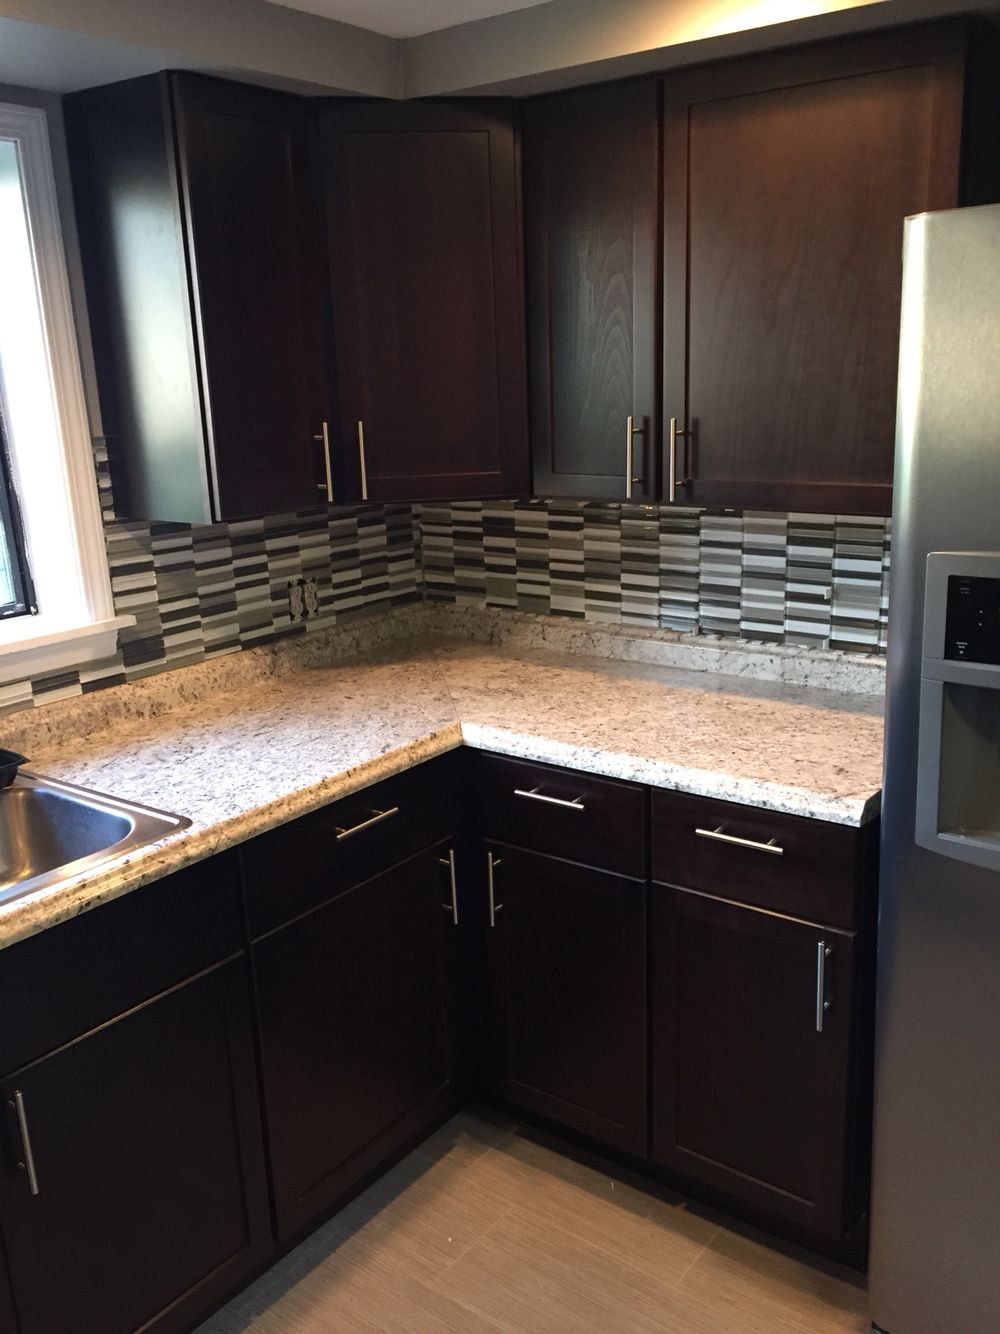 The Home Depot Kitchen Cabinets Home Depot Stock Hampton Bay Java Kitchen Cabinets With Lowes Ouro